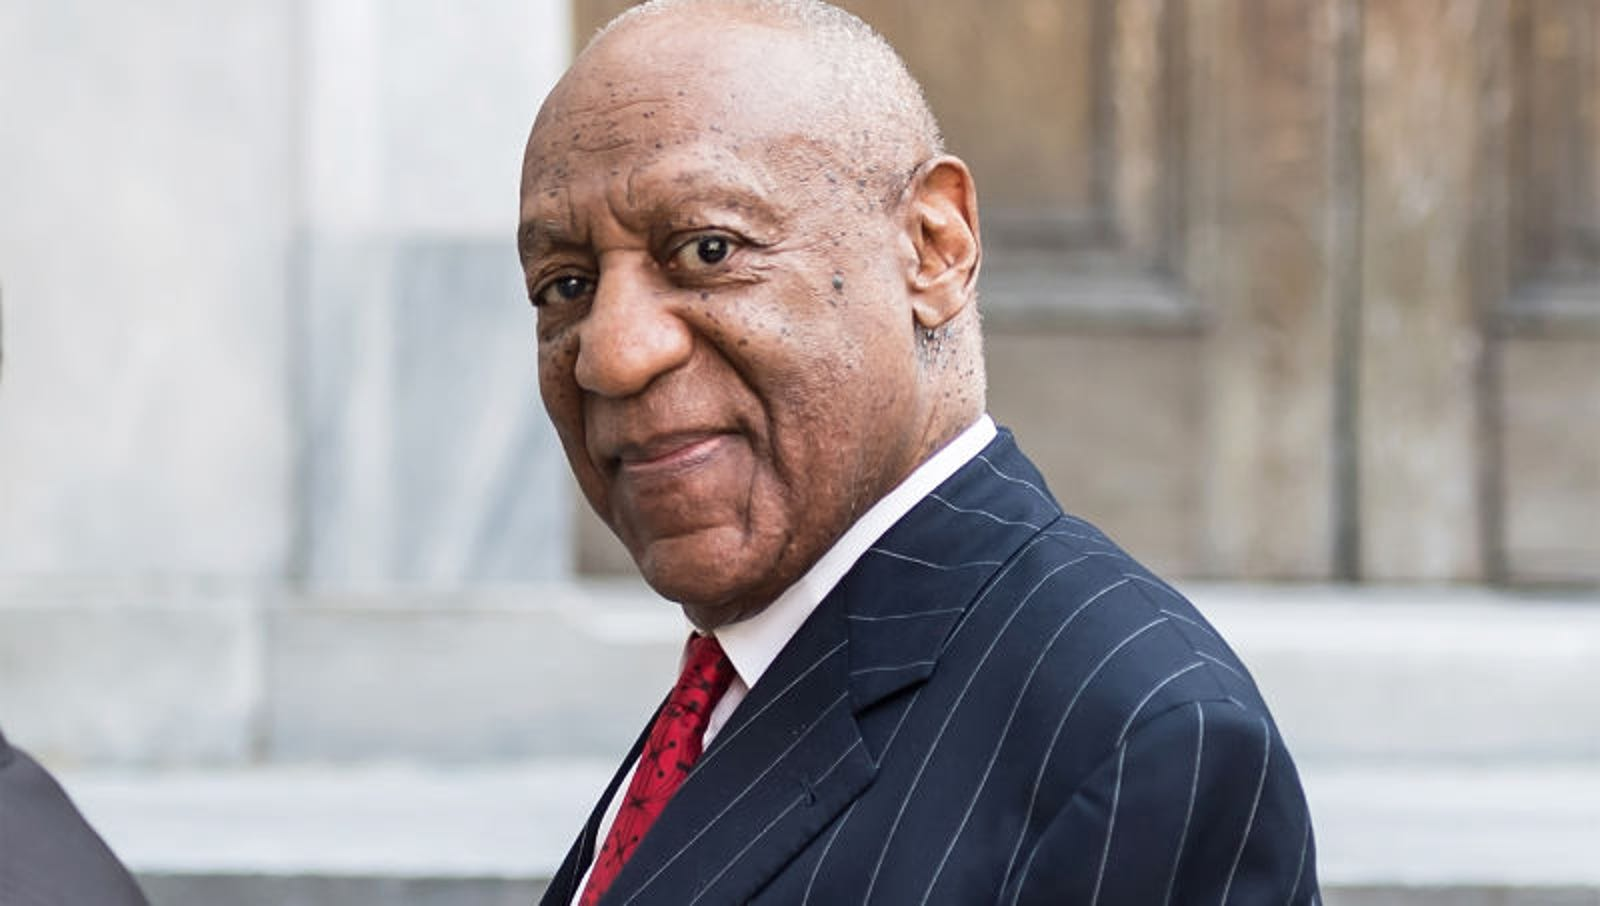 Bill Cosby Feeling Better About Retrial Now That Climate Around Sexual Assault Has Cooled Down